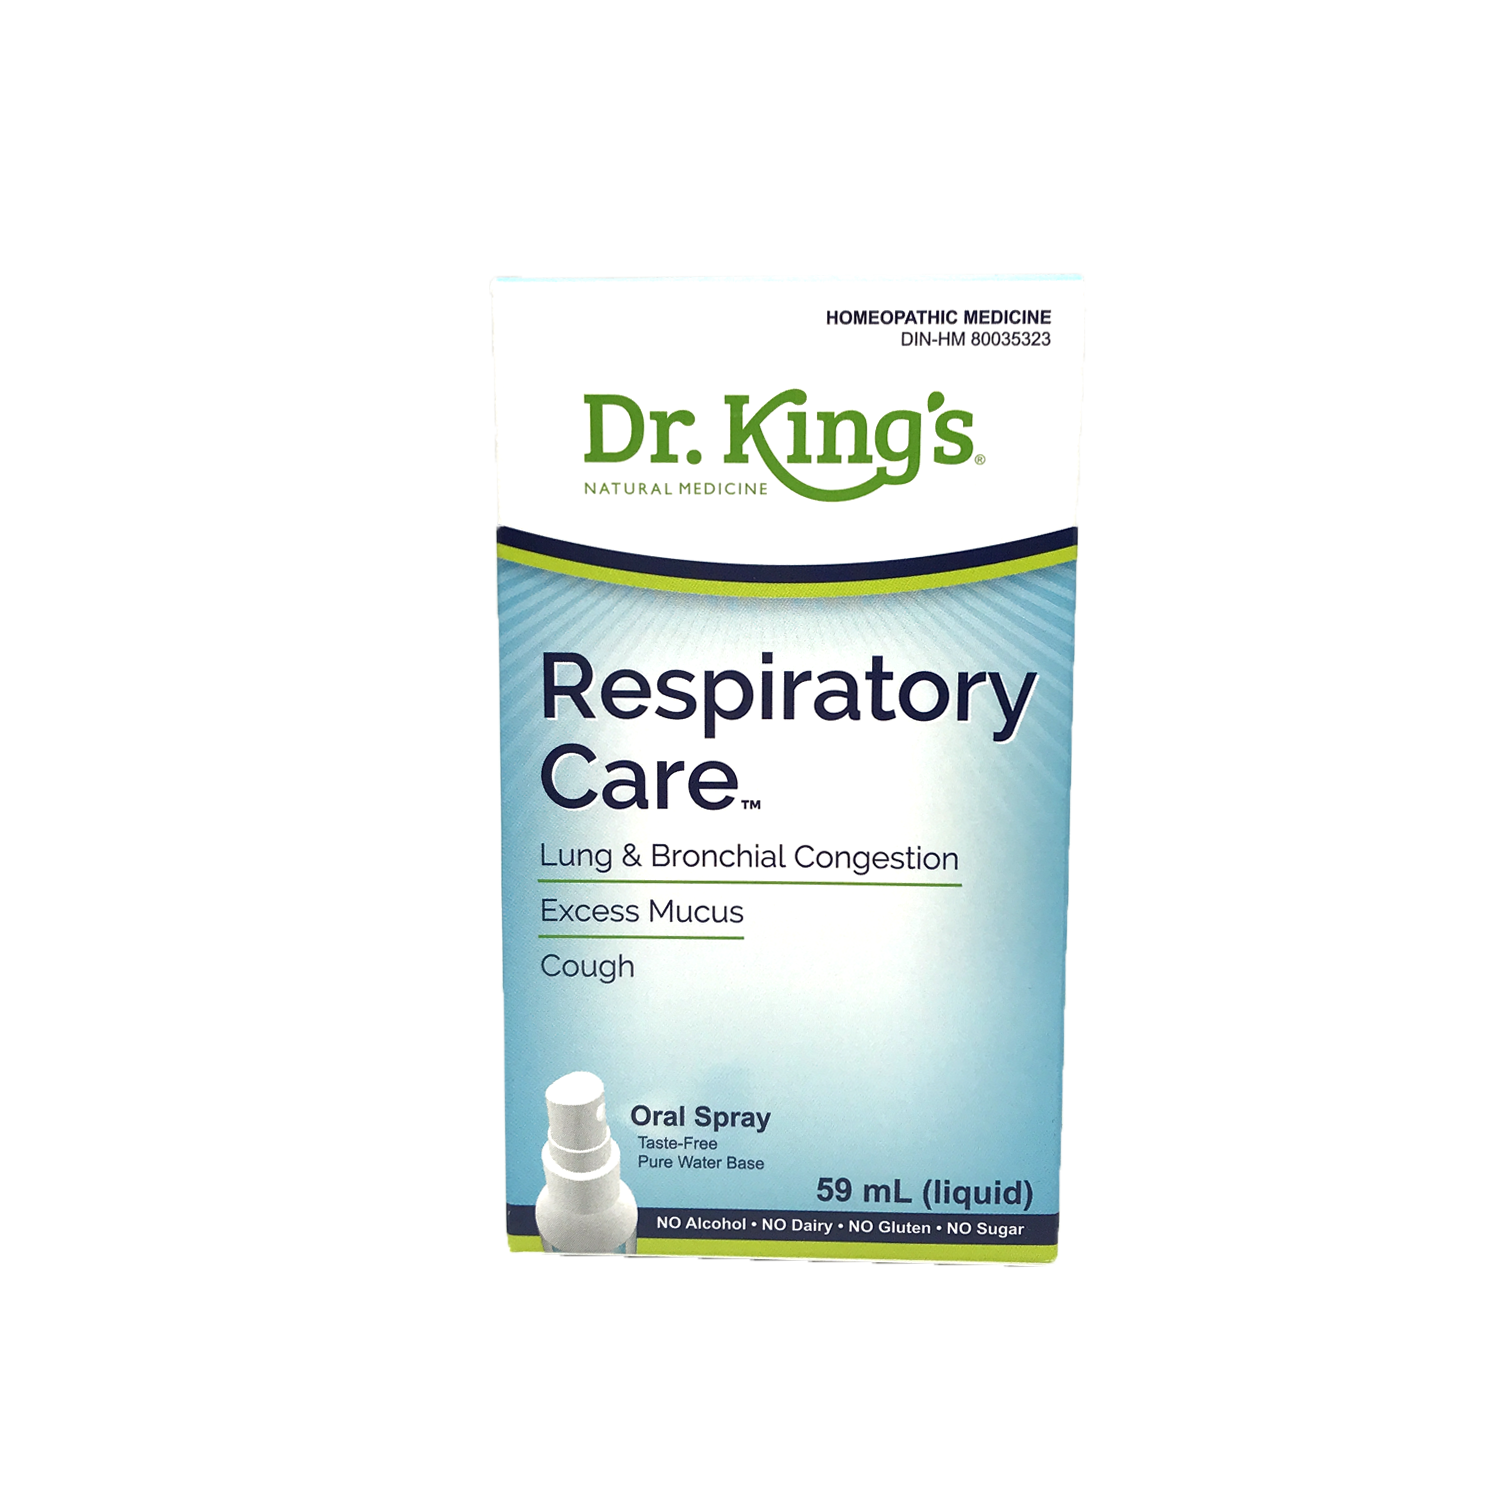 Dr. King's Respiratory Care 59ml